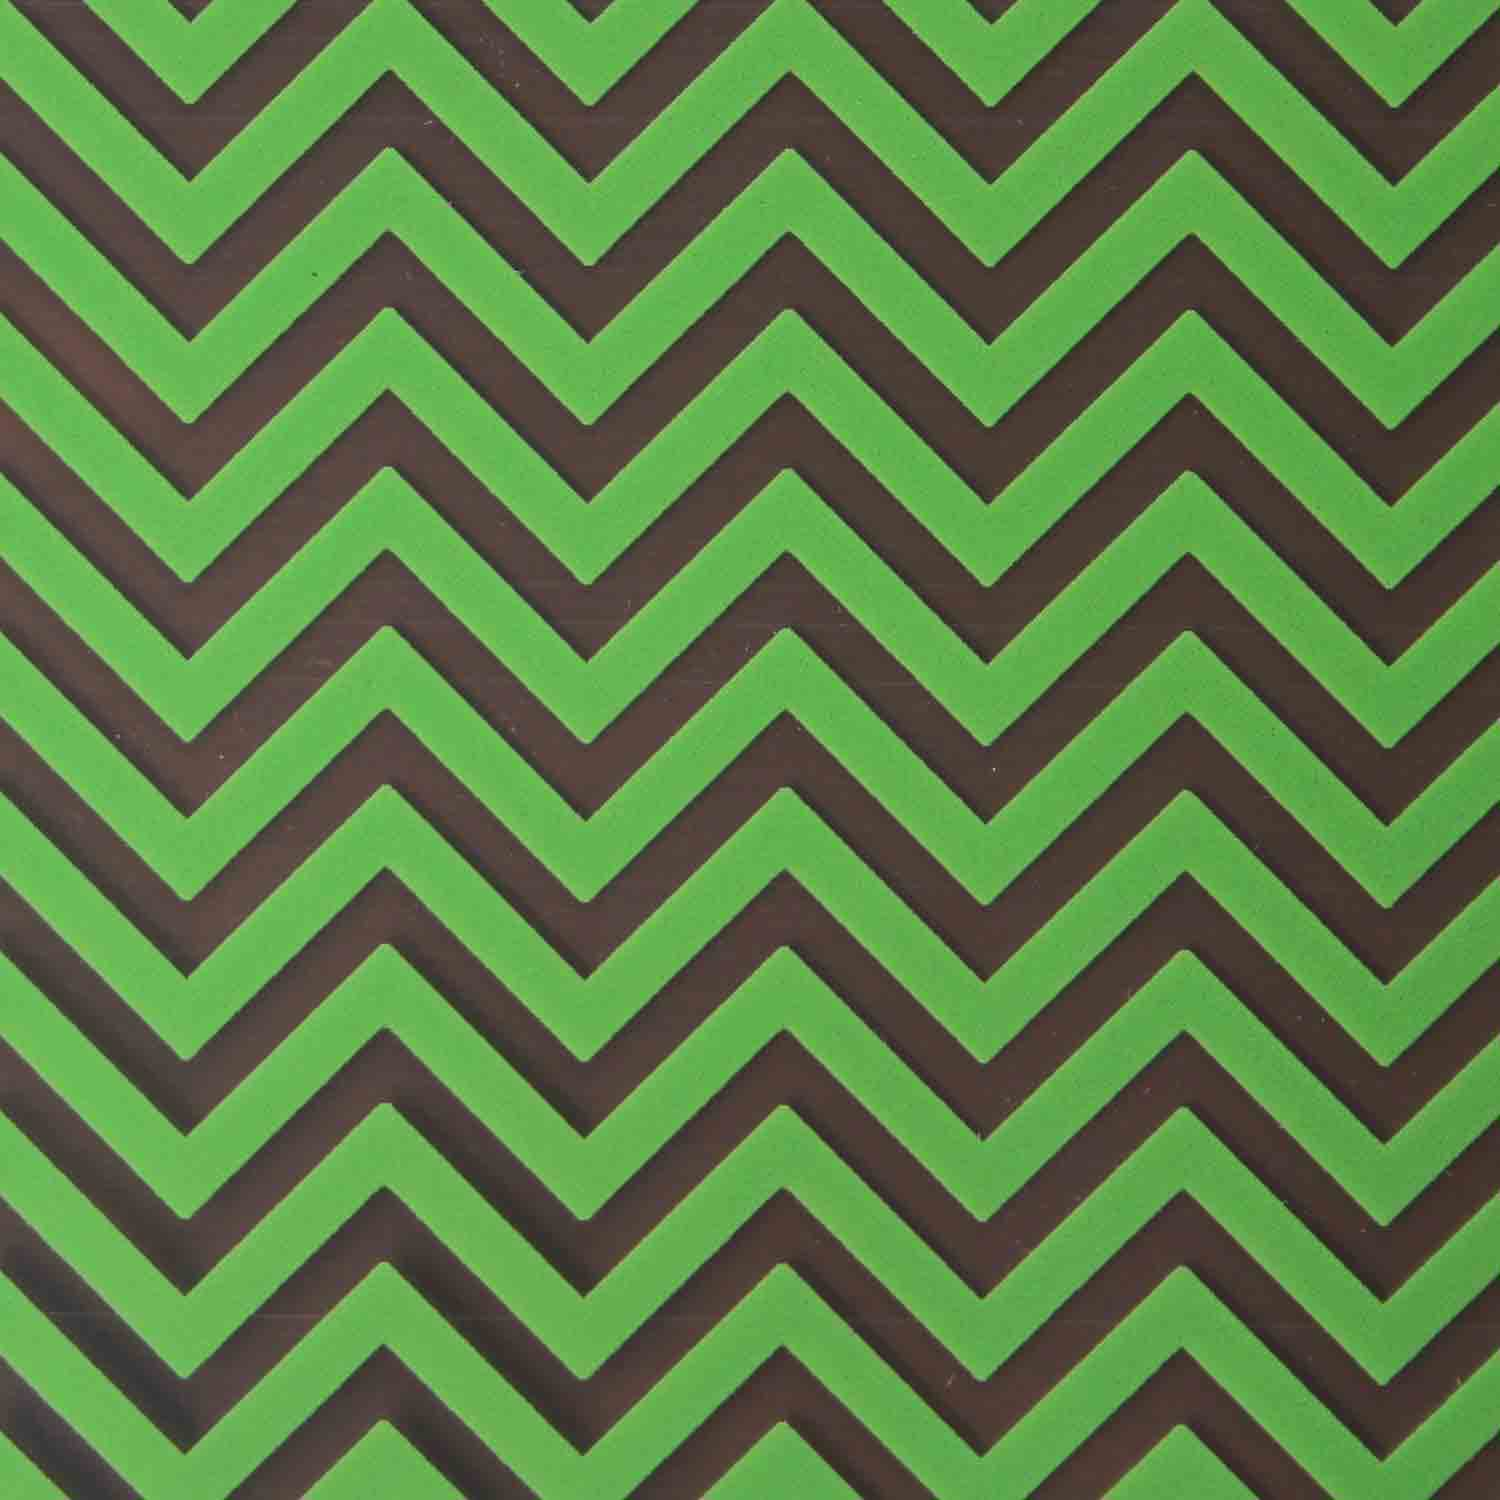 Chocolate Transfer Sheet - Lime Green Chevron